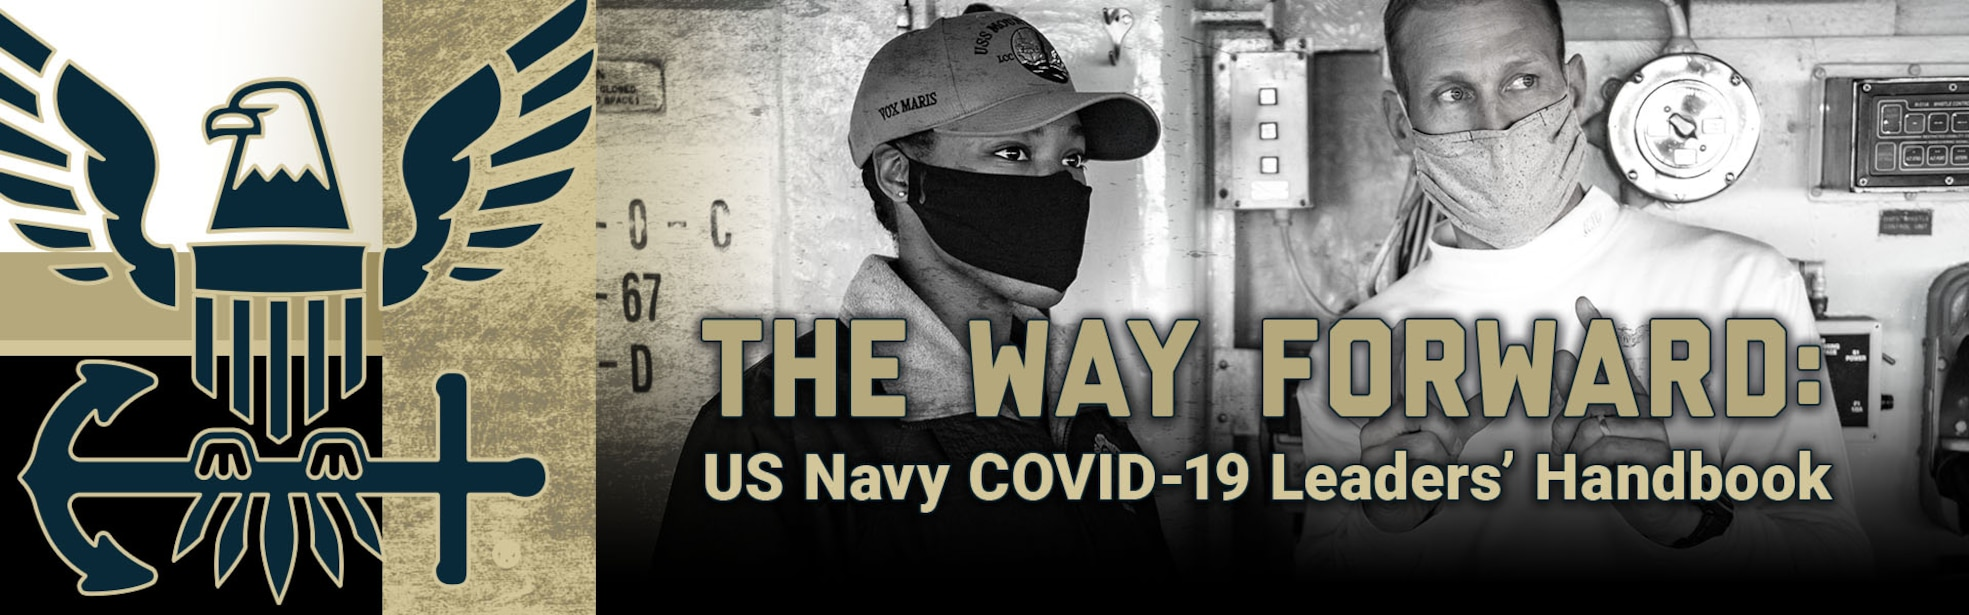 The Way Forward: US Navy Leadership COVID Handbook banner showing sailors wearing mask and navy colored blue with gold accent